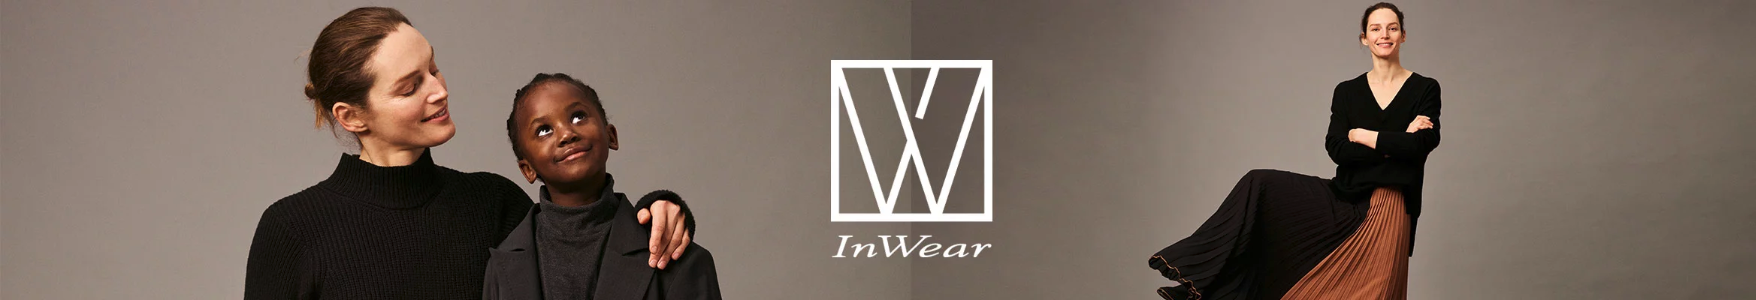 IW-MA18-Brand-Banner-400x2340px